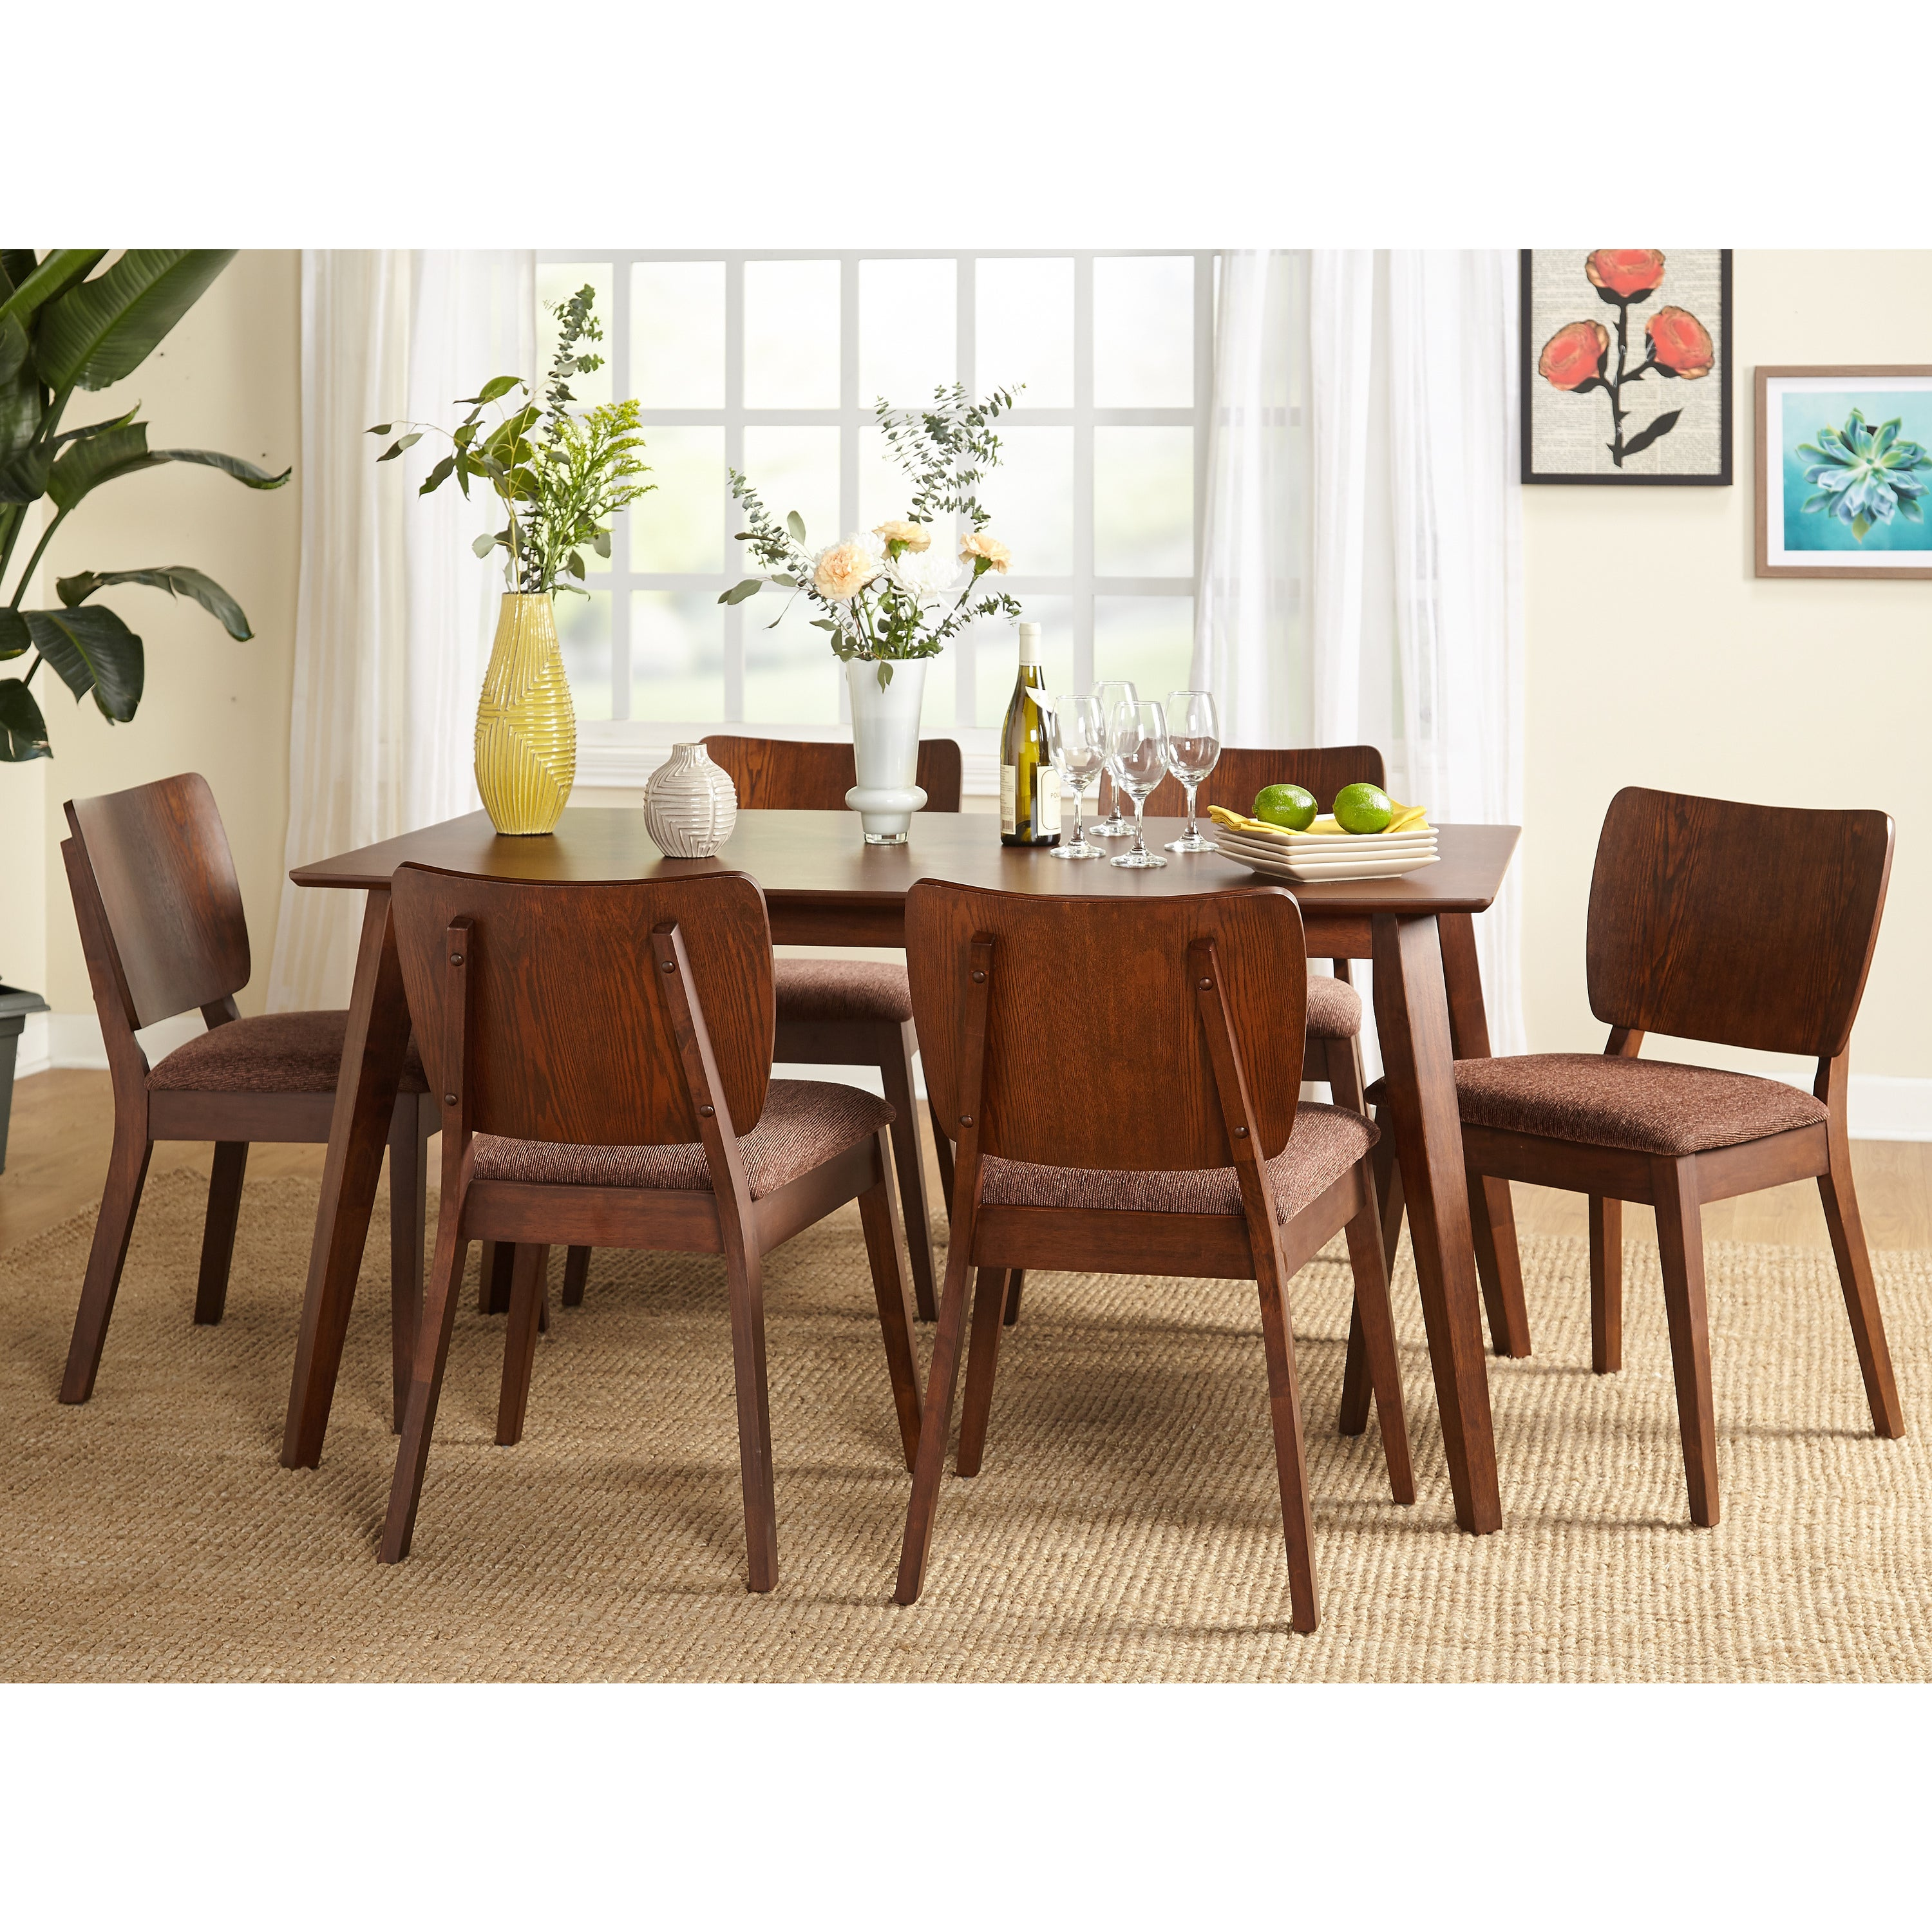 Buy 7 Piece Sets Mid Century Modern Kitchen Dining Room Sets